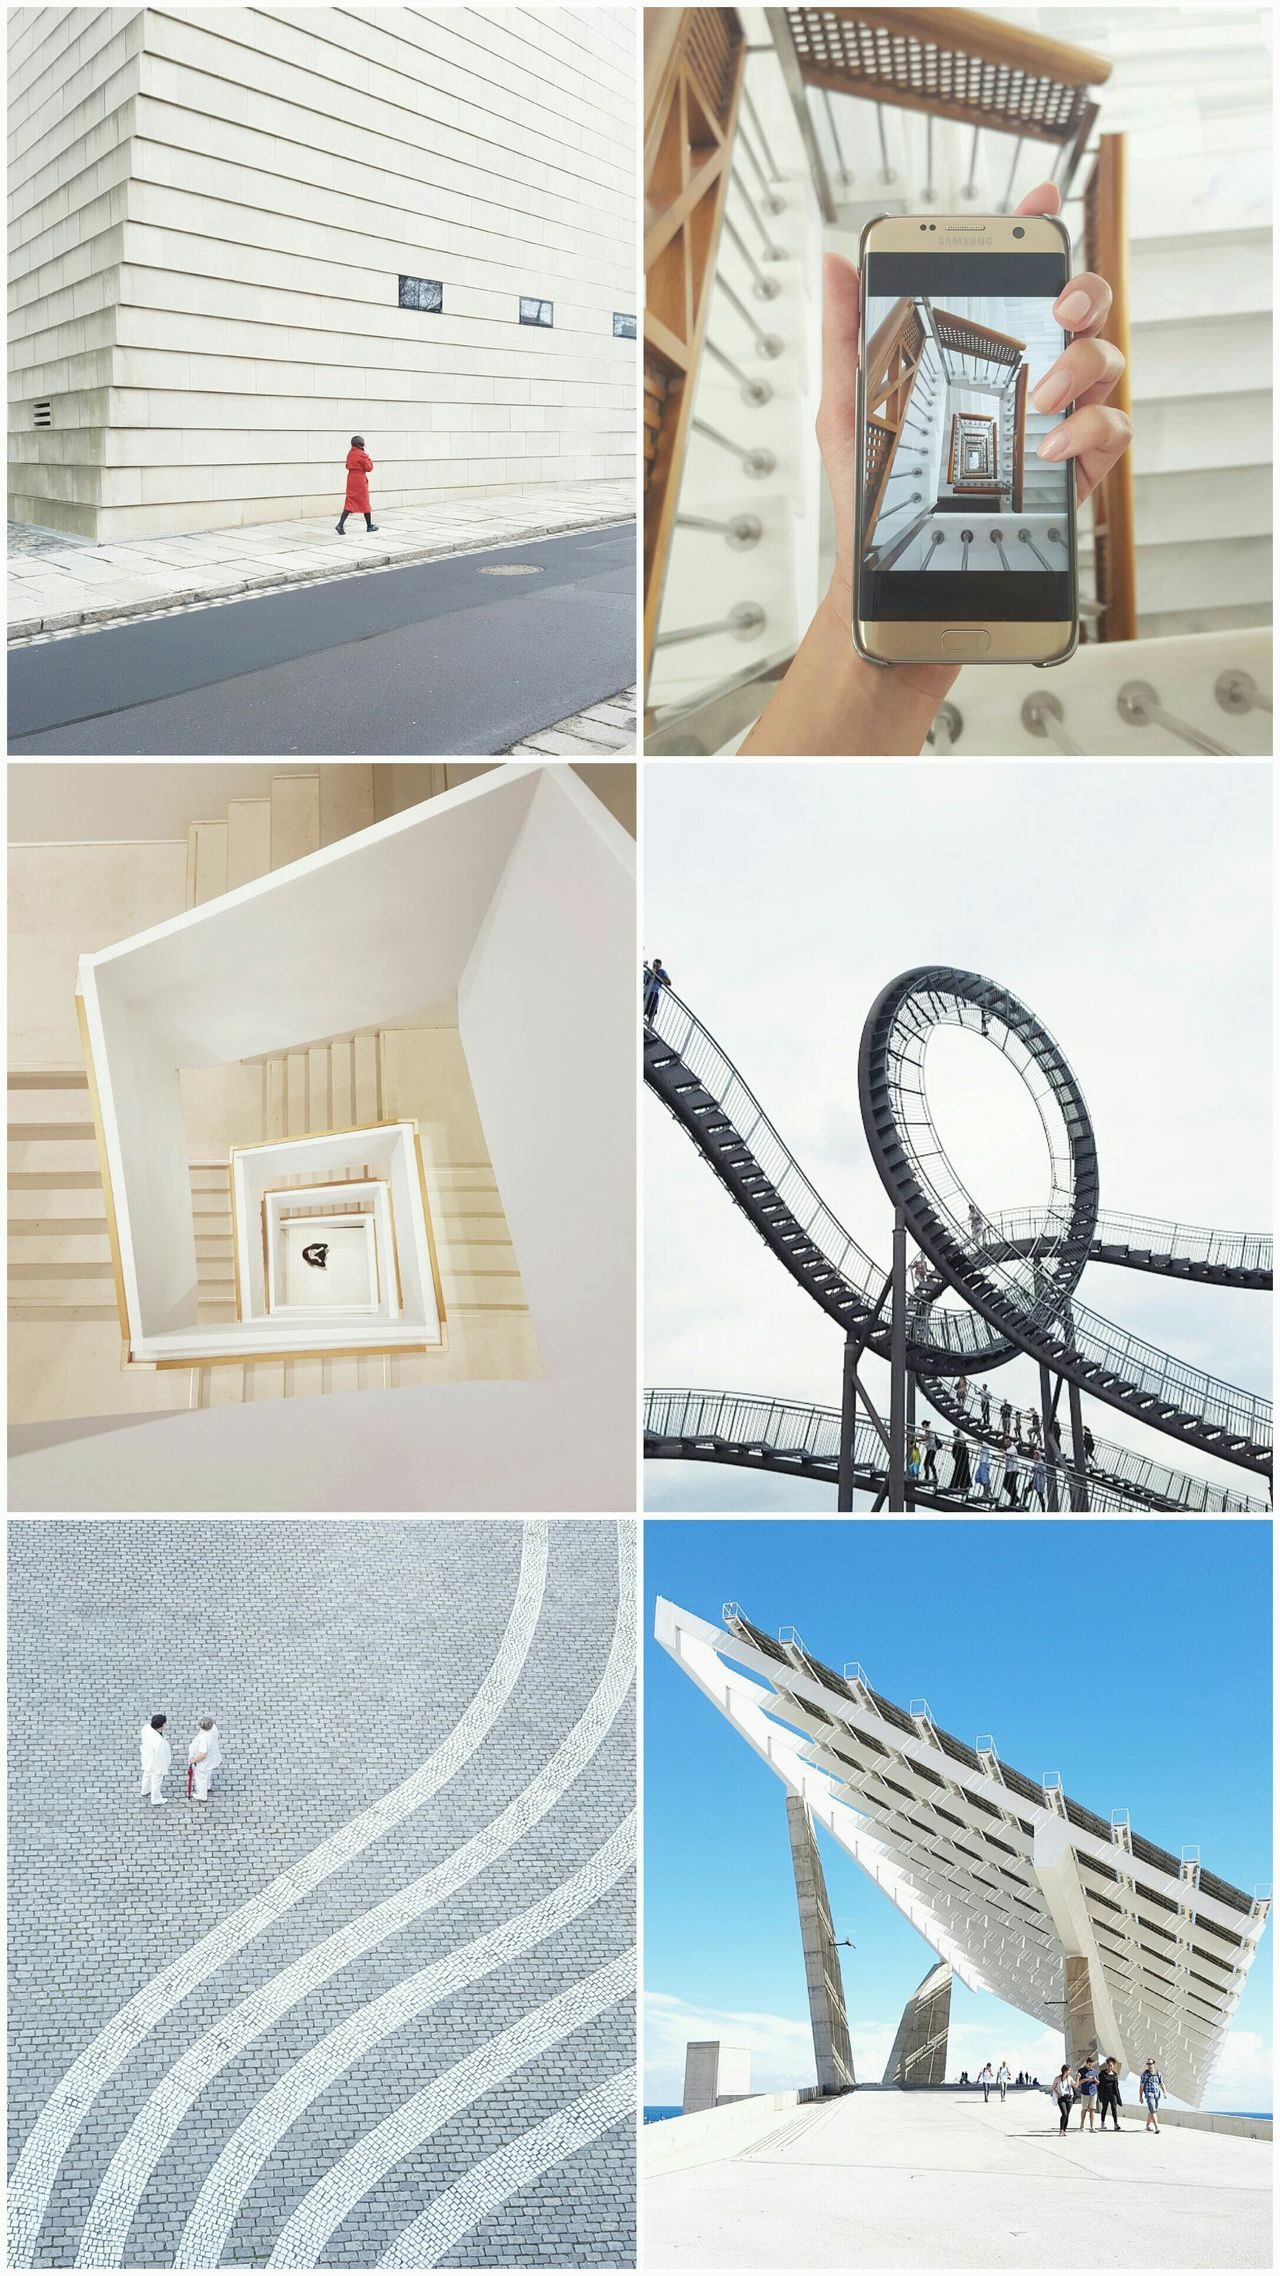 My photos. My view. My 2016. Modern Architecture People Minimalism Travelling Mobilephone Samsung Stairs Spiral Staircase Holding A Phone Facades Walls My 2016 Cobblestone Photo Collage Urban Geometry Houses Close-up Happiness Streetphotography Talking To People Taking Photos Barcelona Dresden Bonn